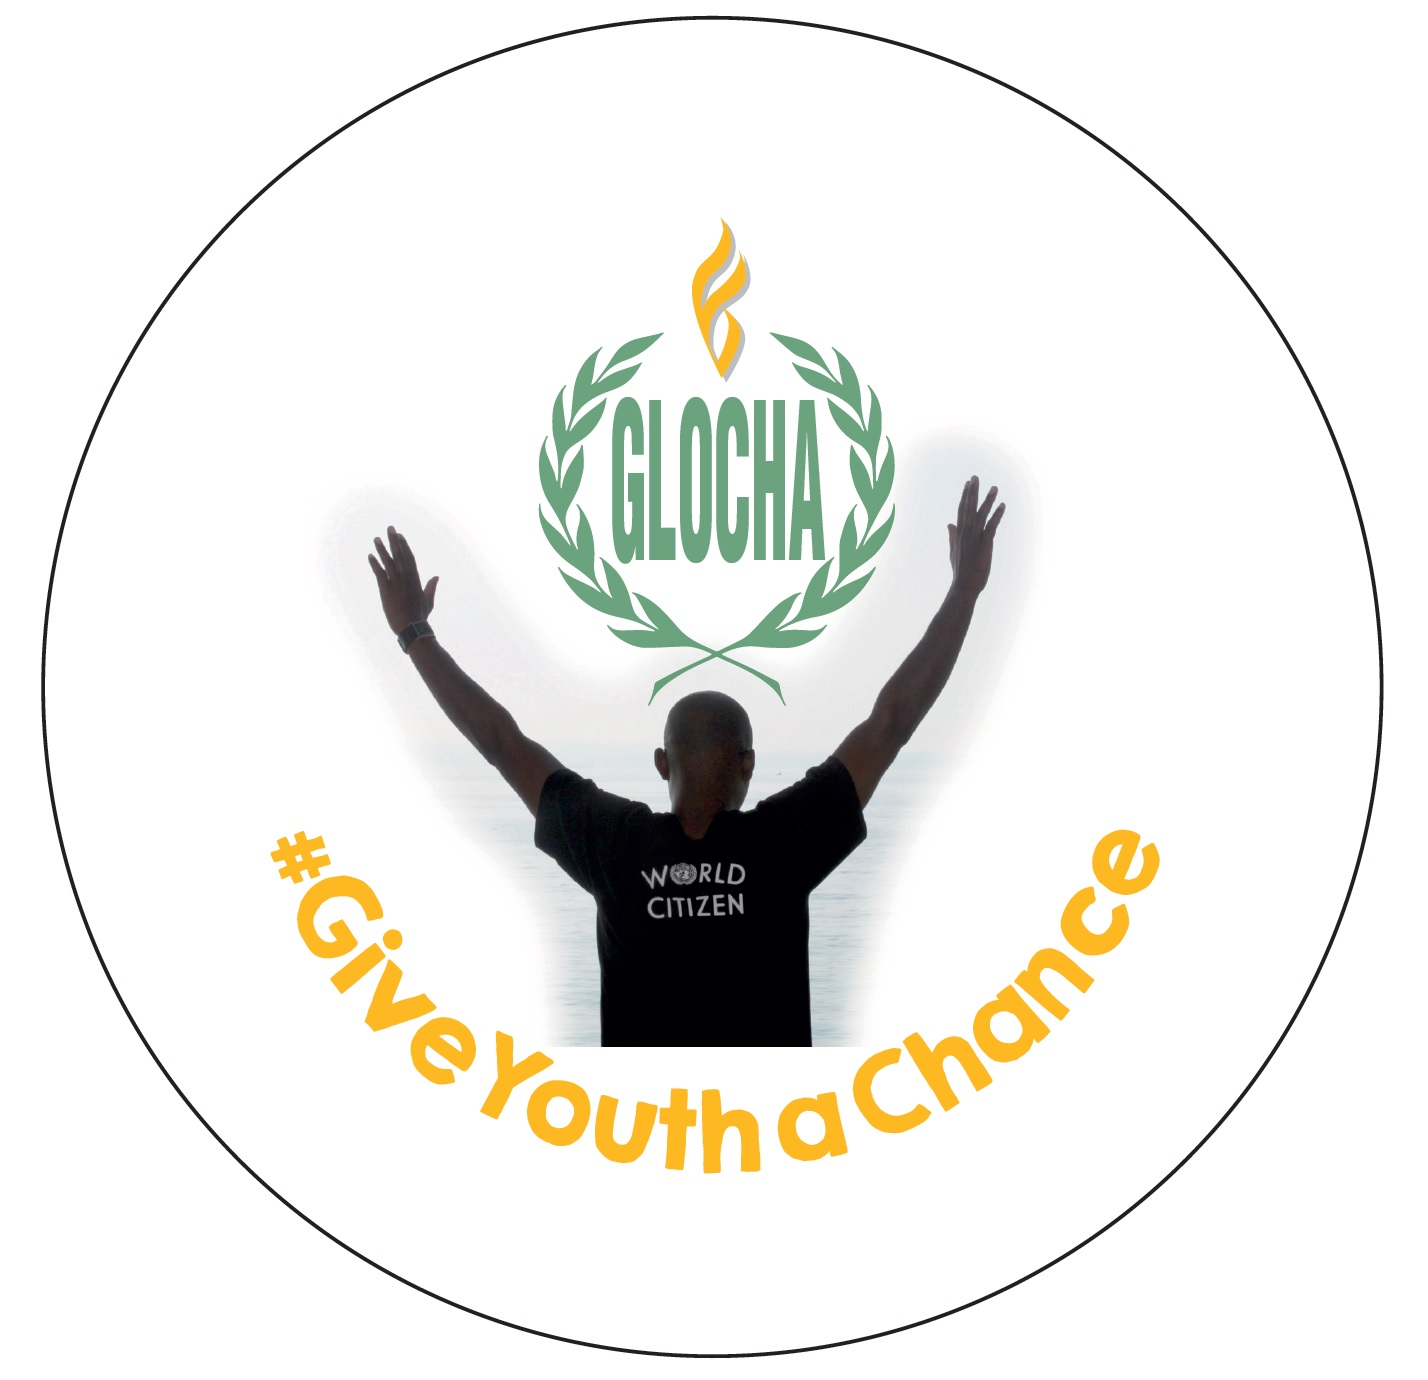 Giveyouthachance